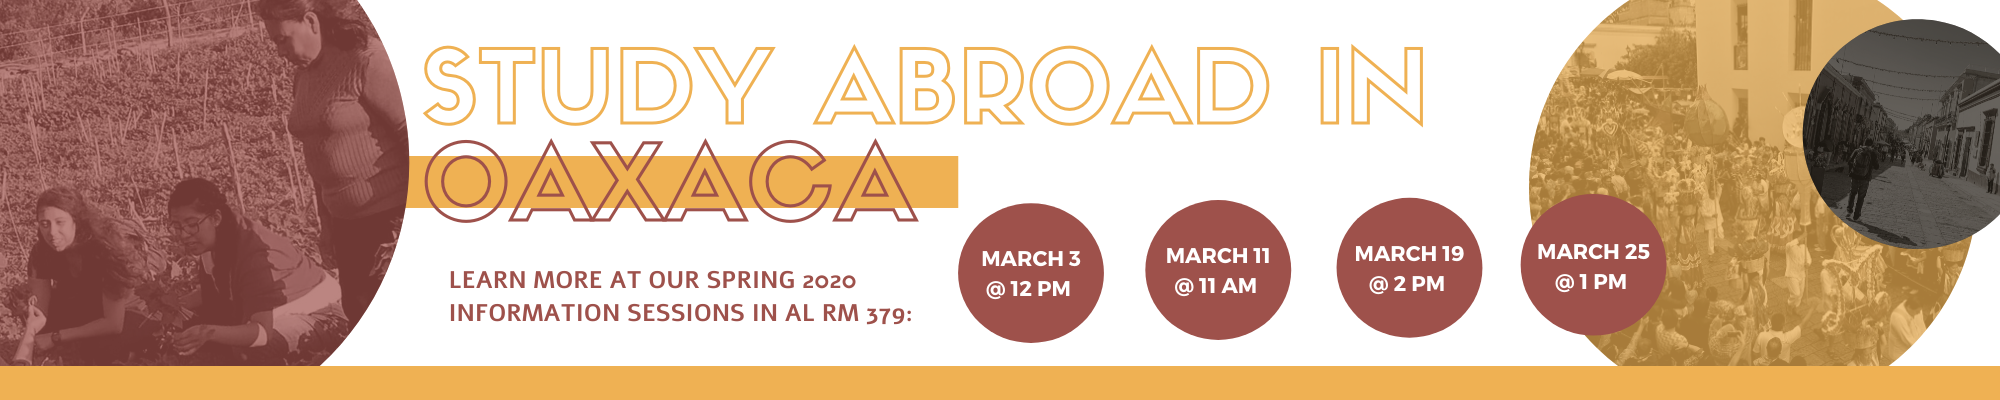 Study Abroad in Oaxaca - LEARN MORE AT OUR SPRING 2020 INFO SESSIONS: March 3@12pm, March 11@11am, March 19@2opm, March 25@1pm in ARTS AND LETTERS, ROOM 318